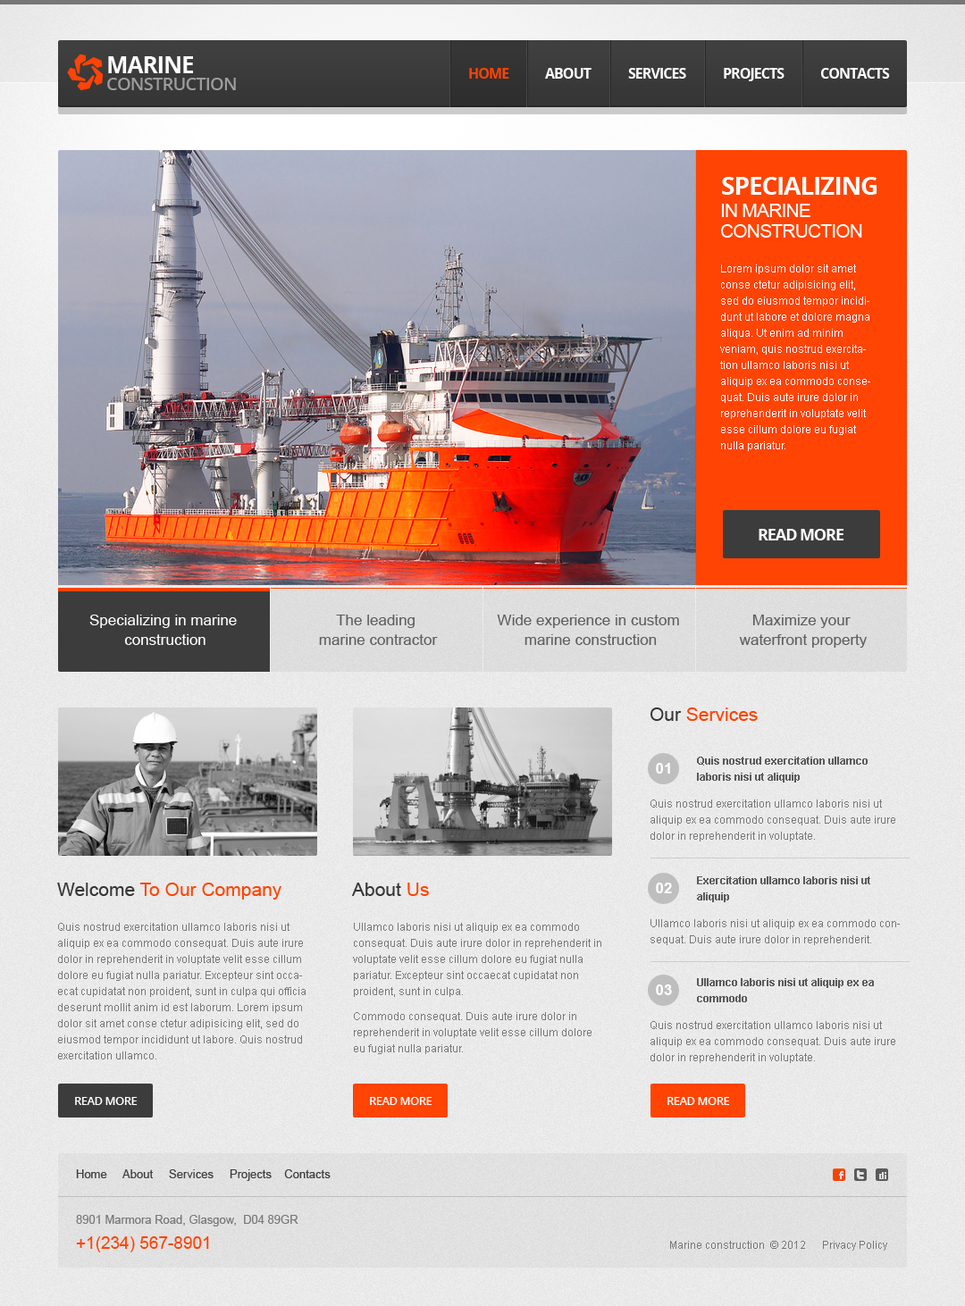 Marine Construction Website Template with Orange Design Elements - image